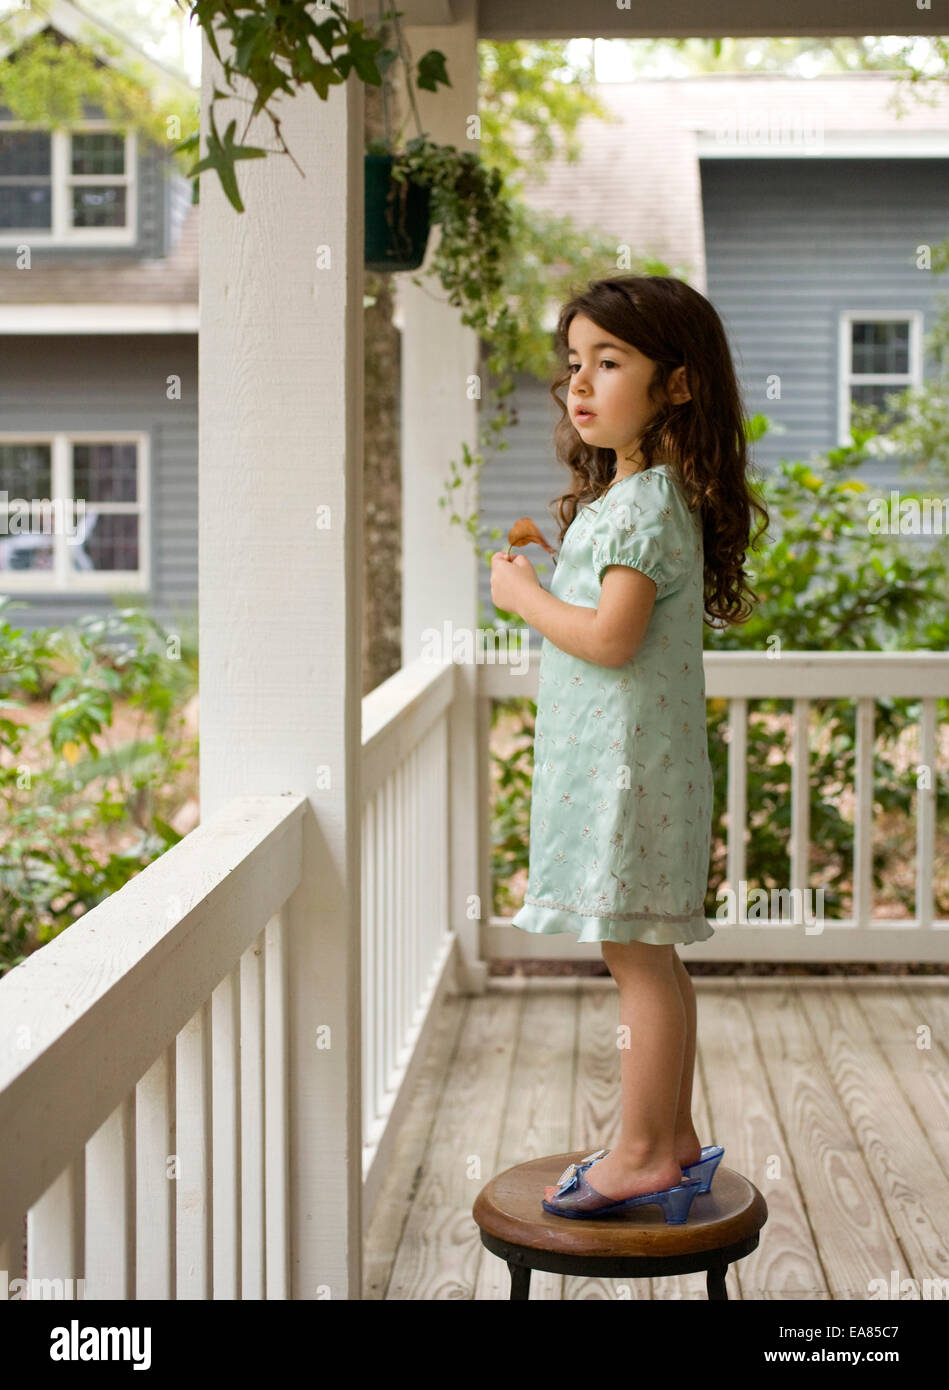 young girl in play shoes standing on stool on porch - Stock Image